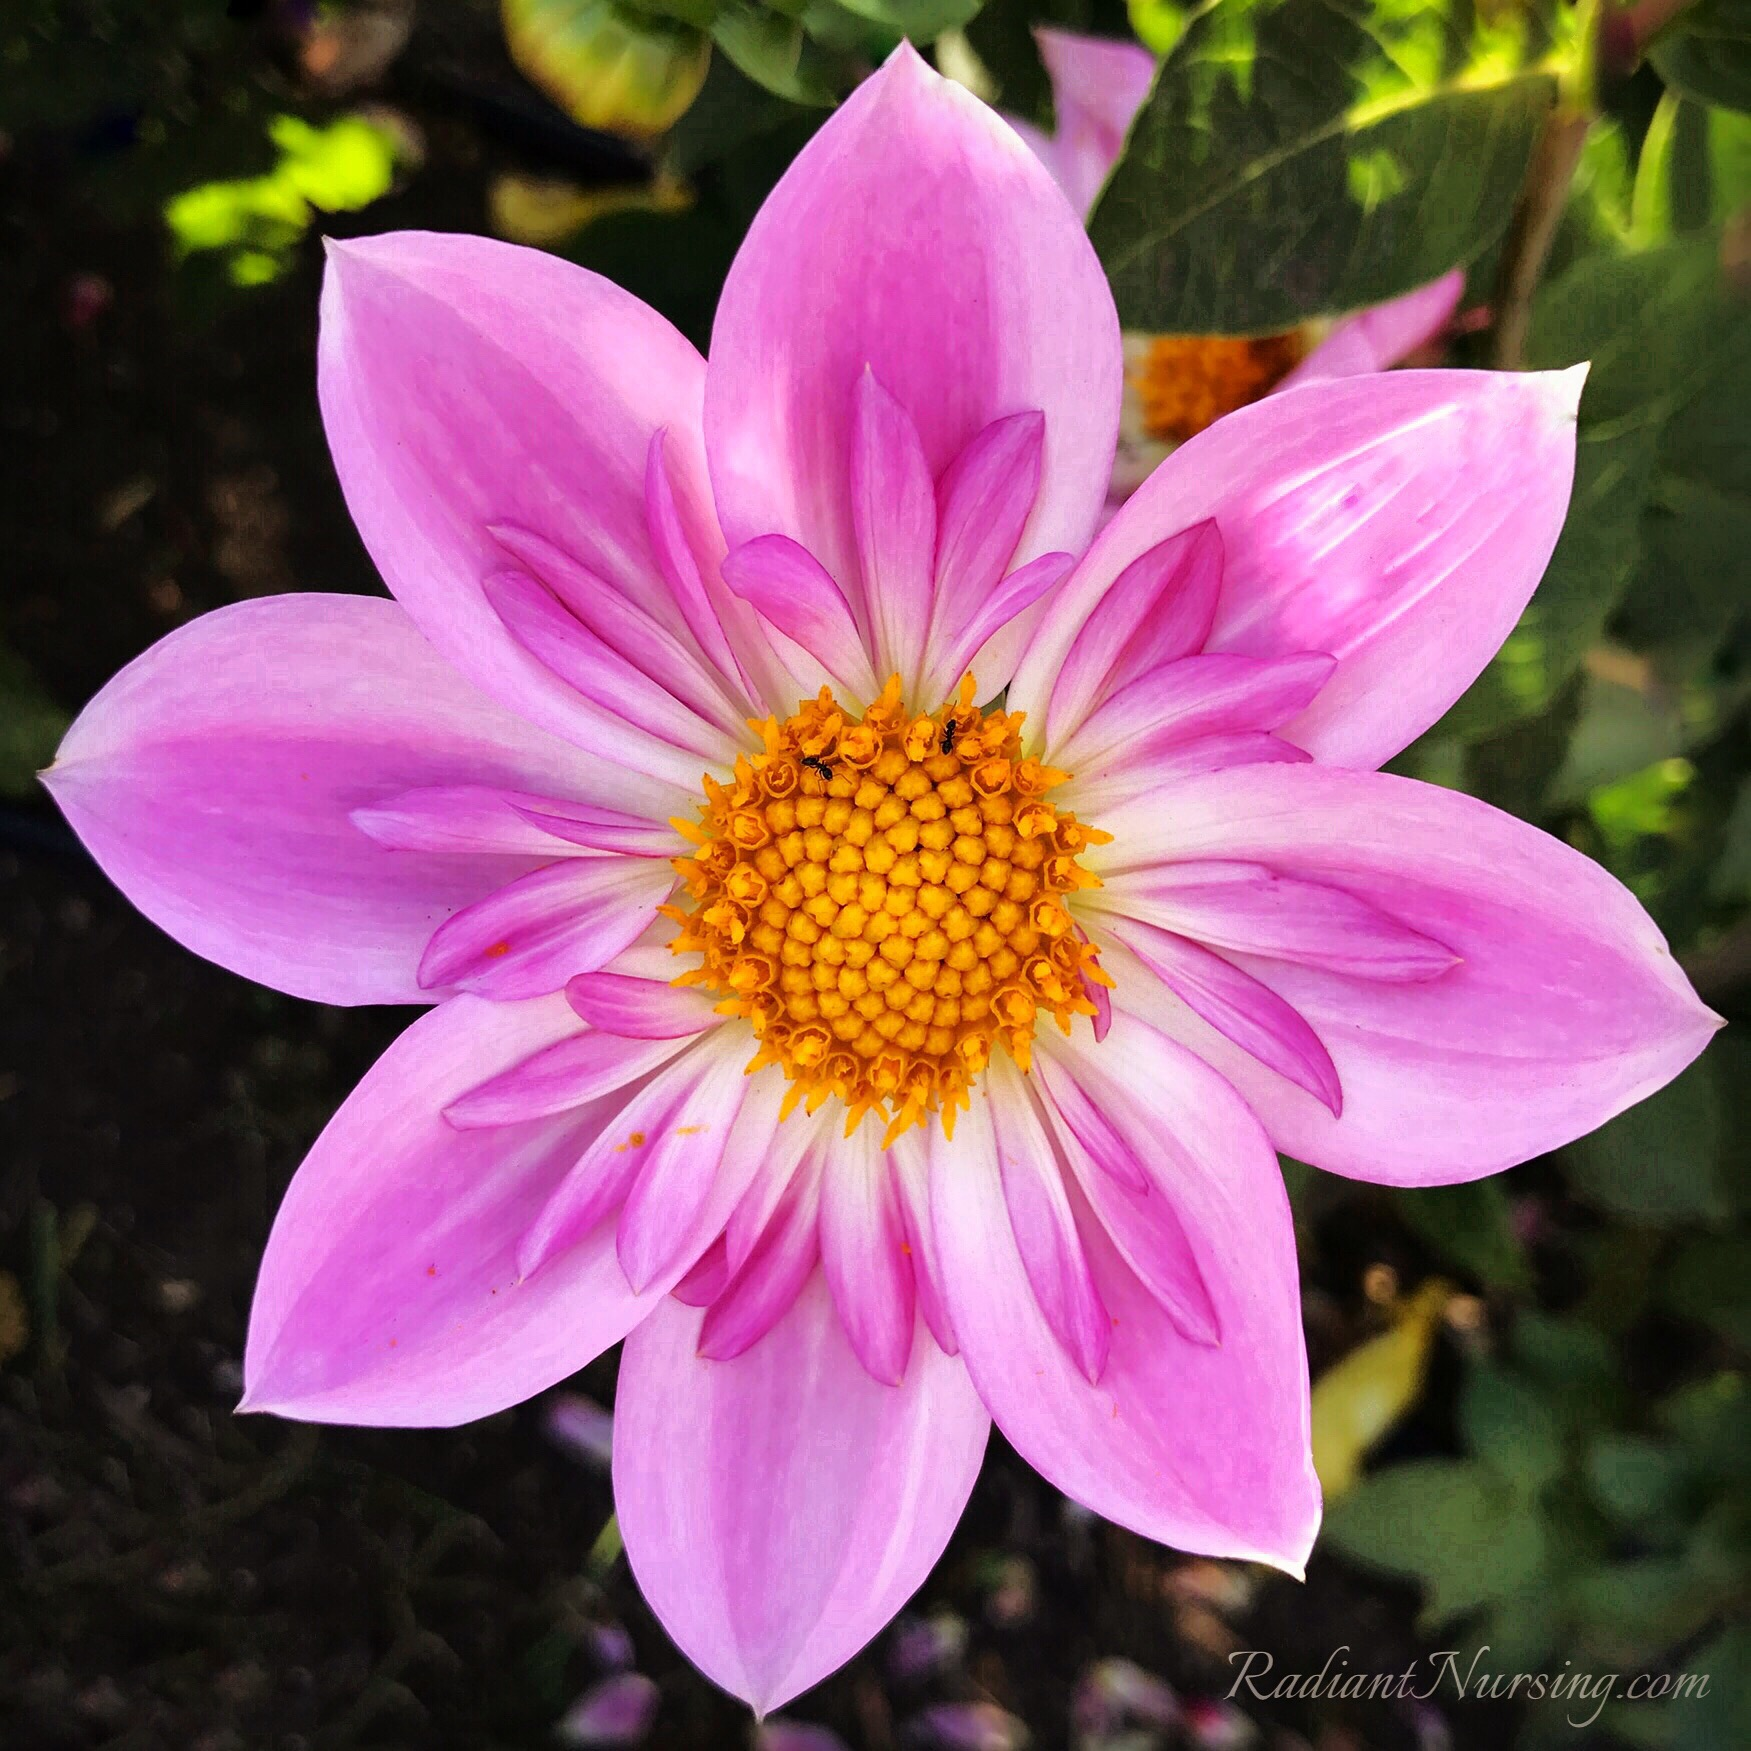 This is actually a dahlia flower. Love the ring of inner petals.